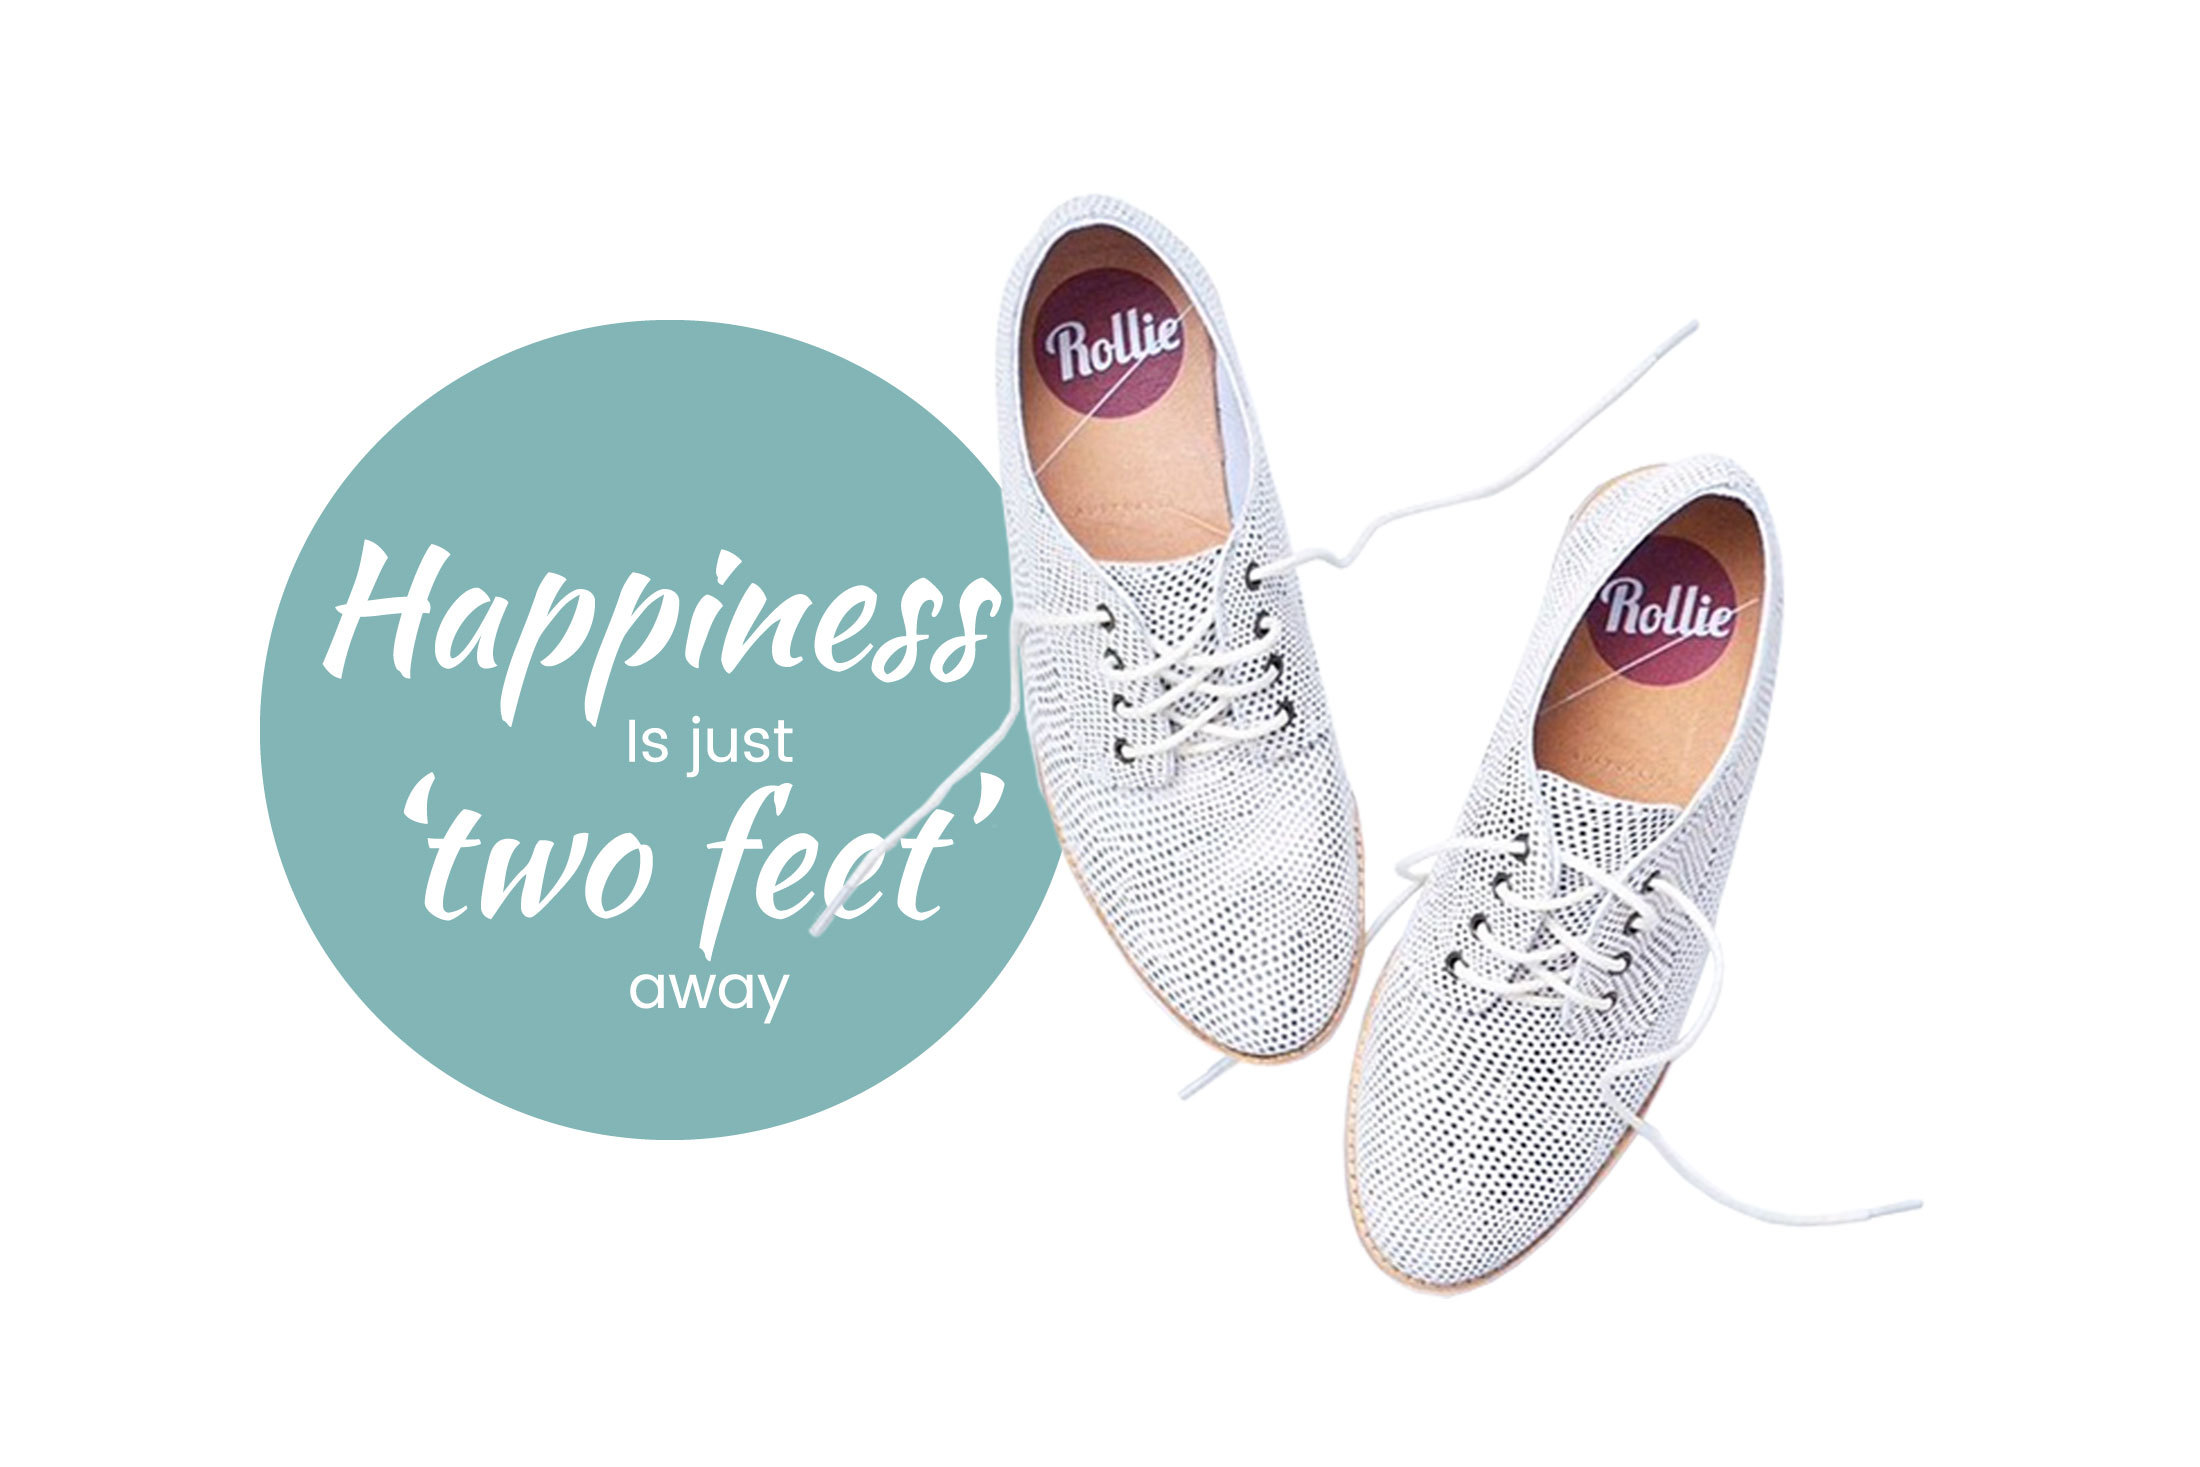 Rollie-schoenen-Happiness-two-feet-away